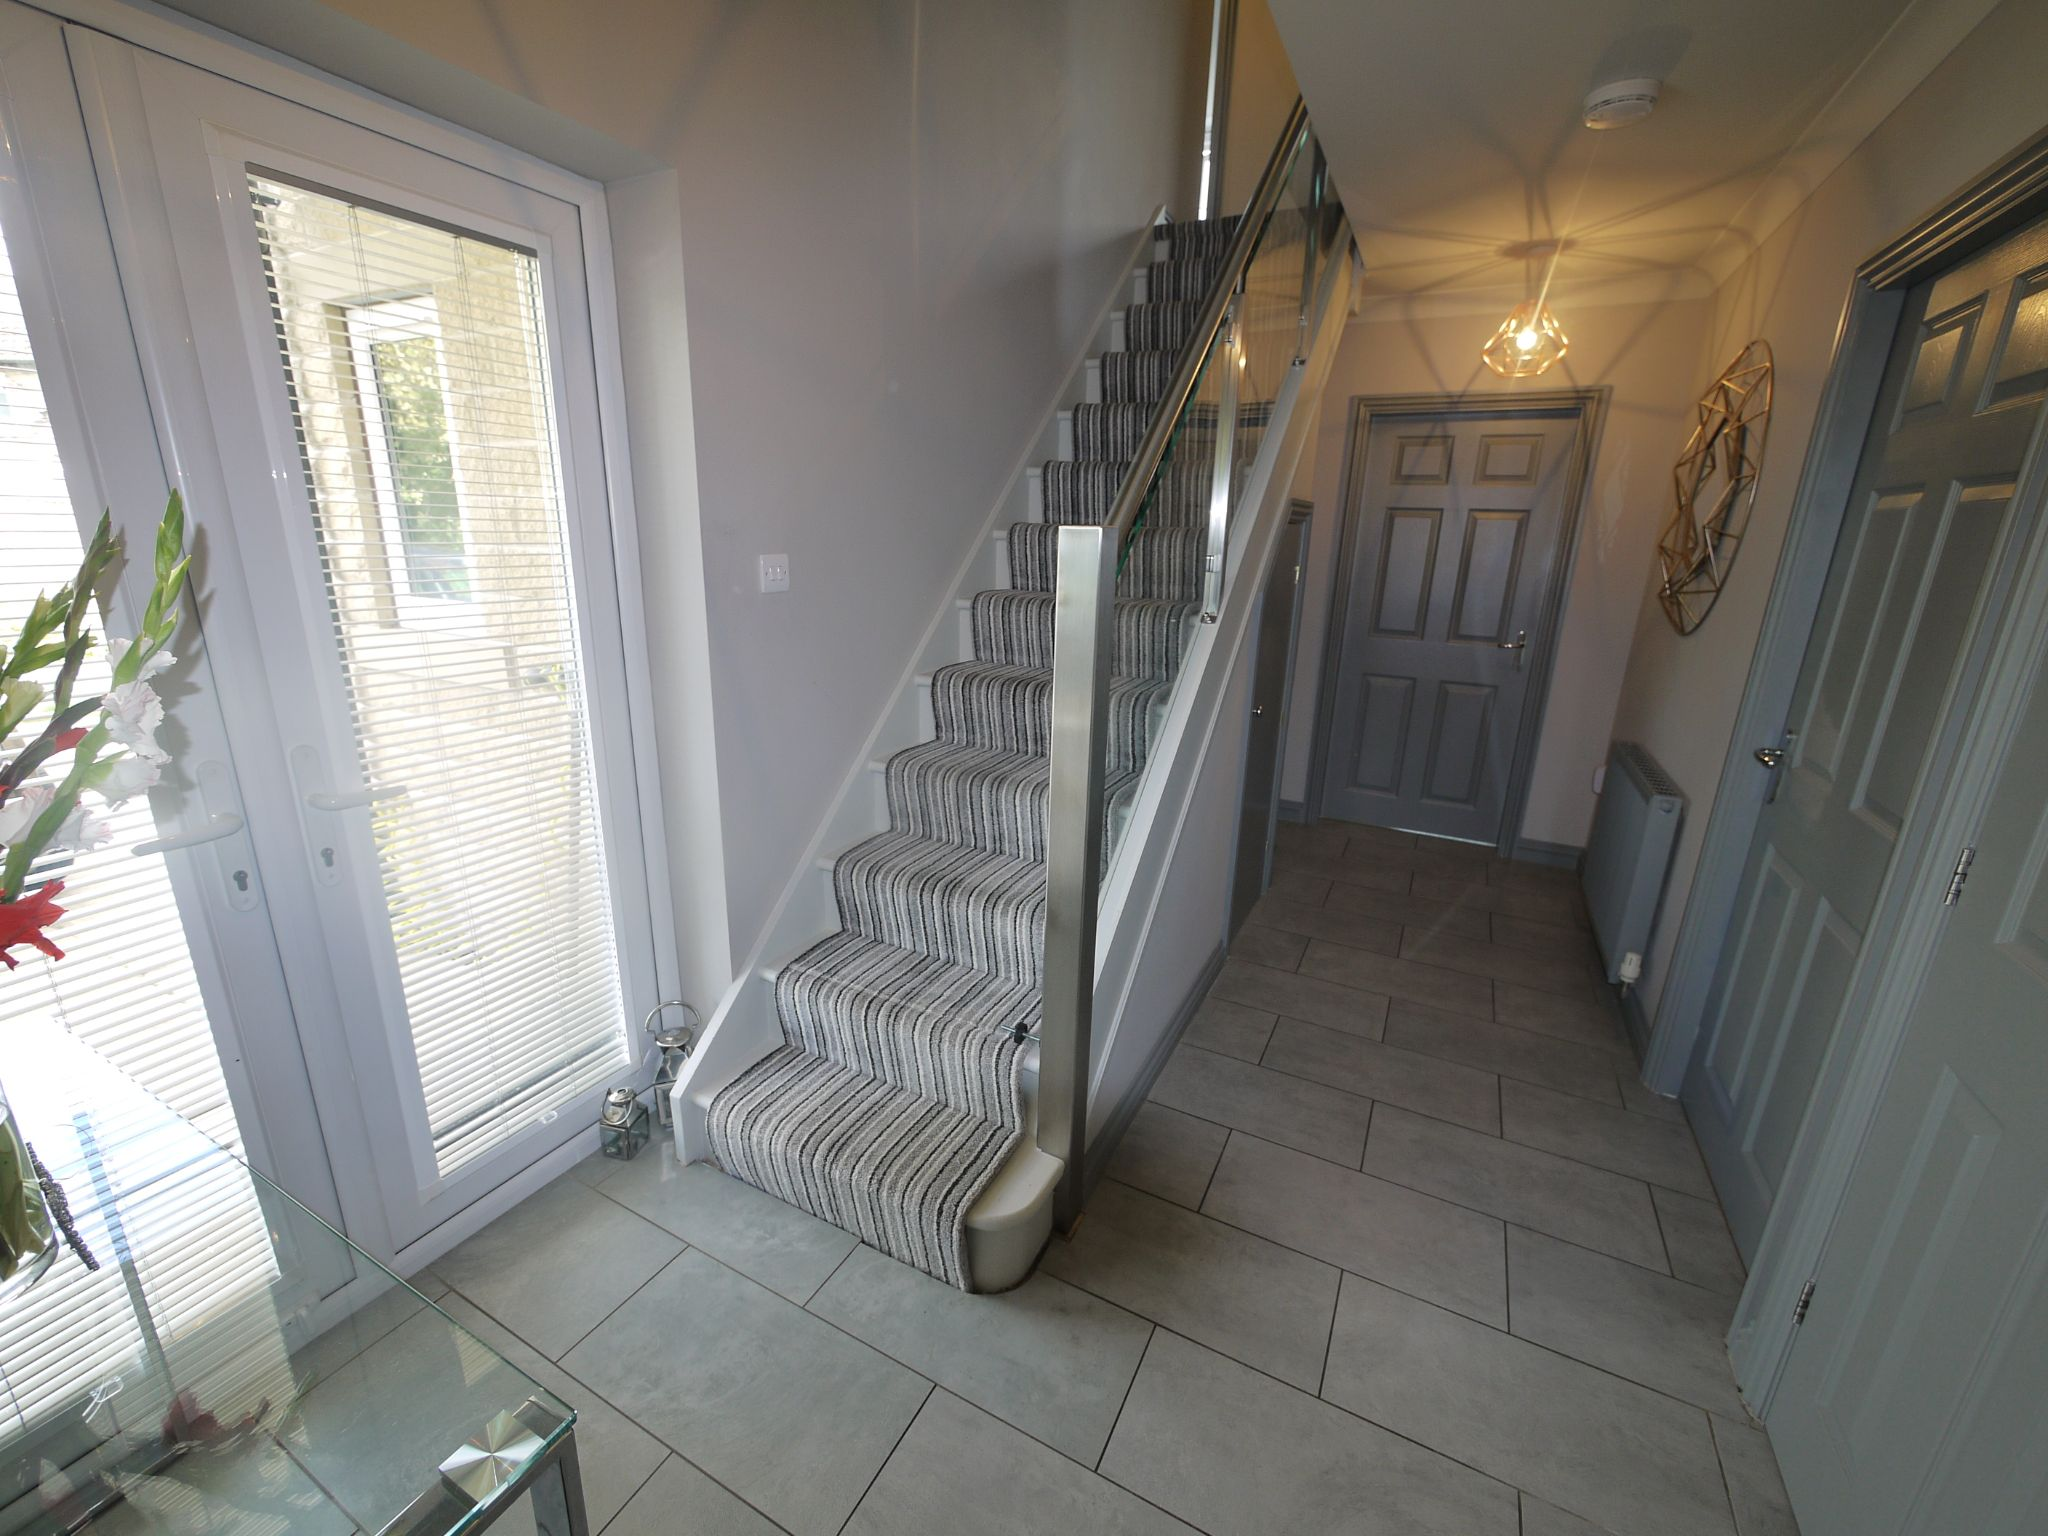 4 bedroom detached house SSTC in Halifax - Hall 2.